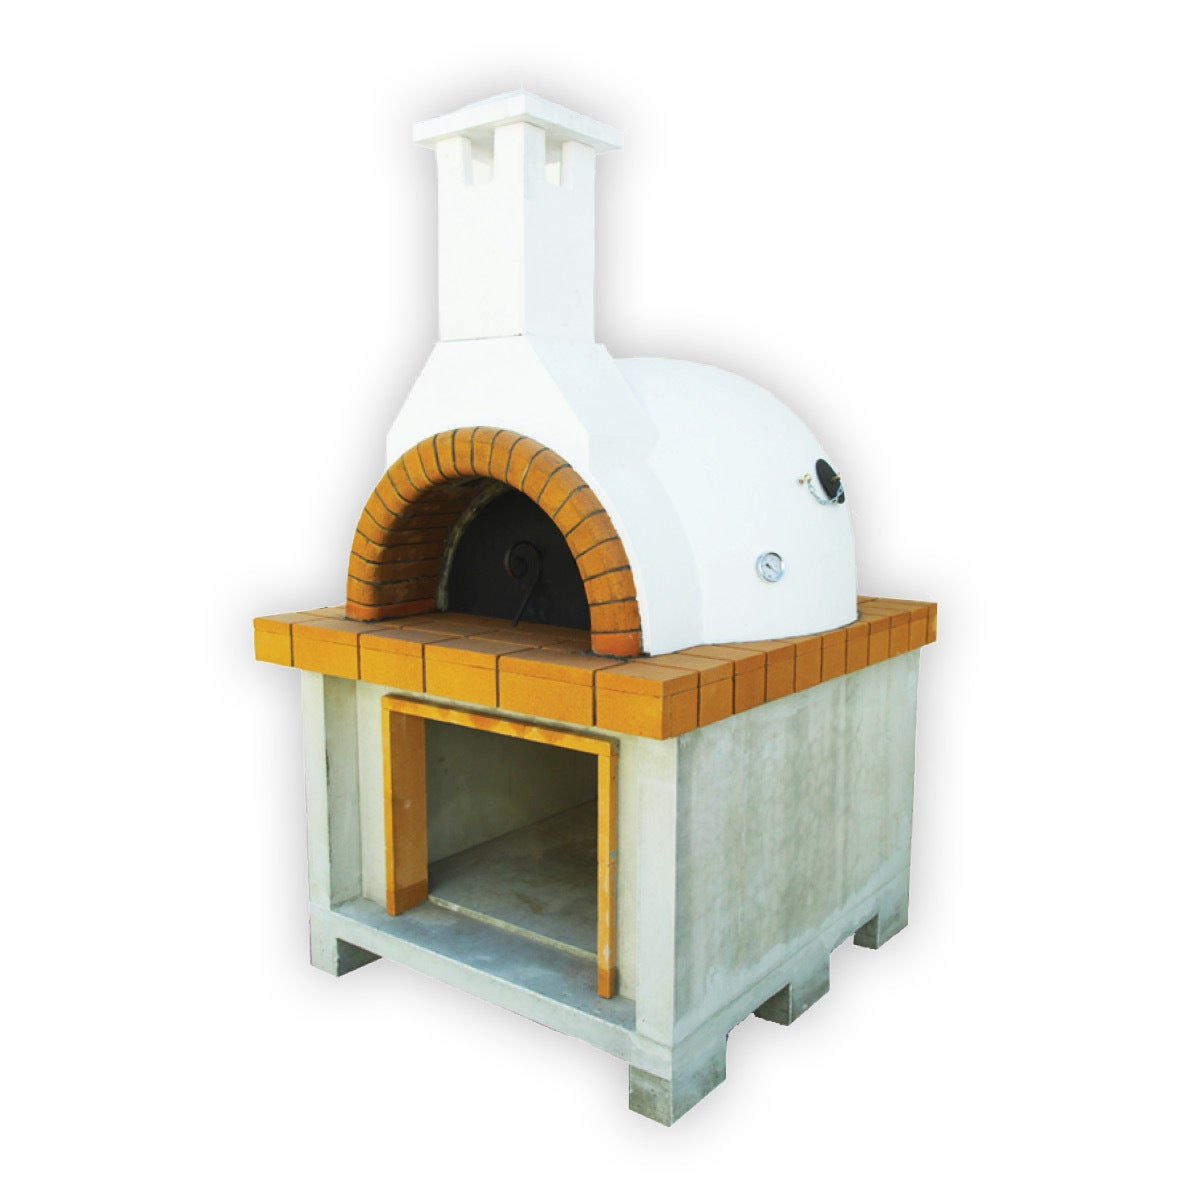 Deluxe Tuscan Wood Fire Pizza Oven Thermal Dome Light Brick